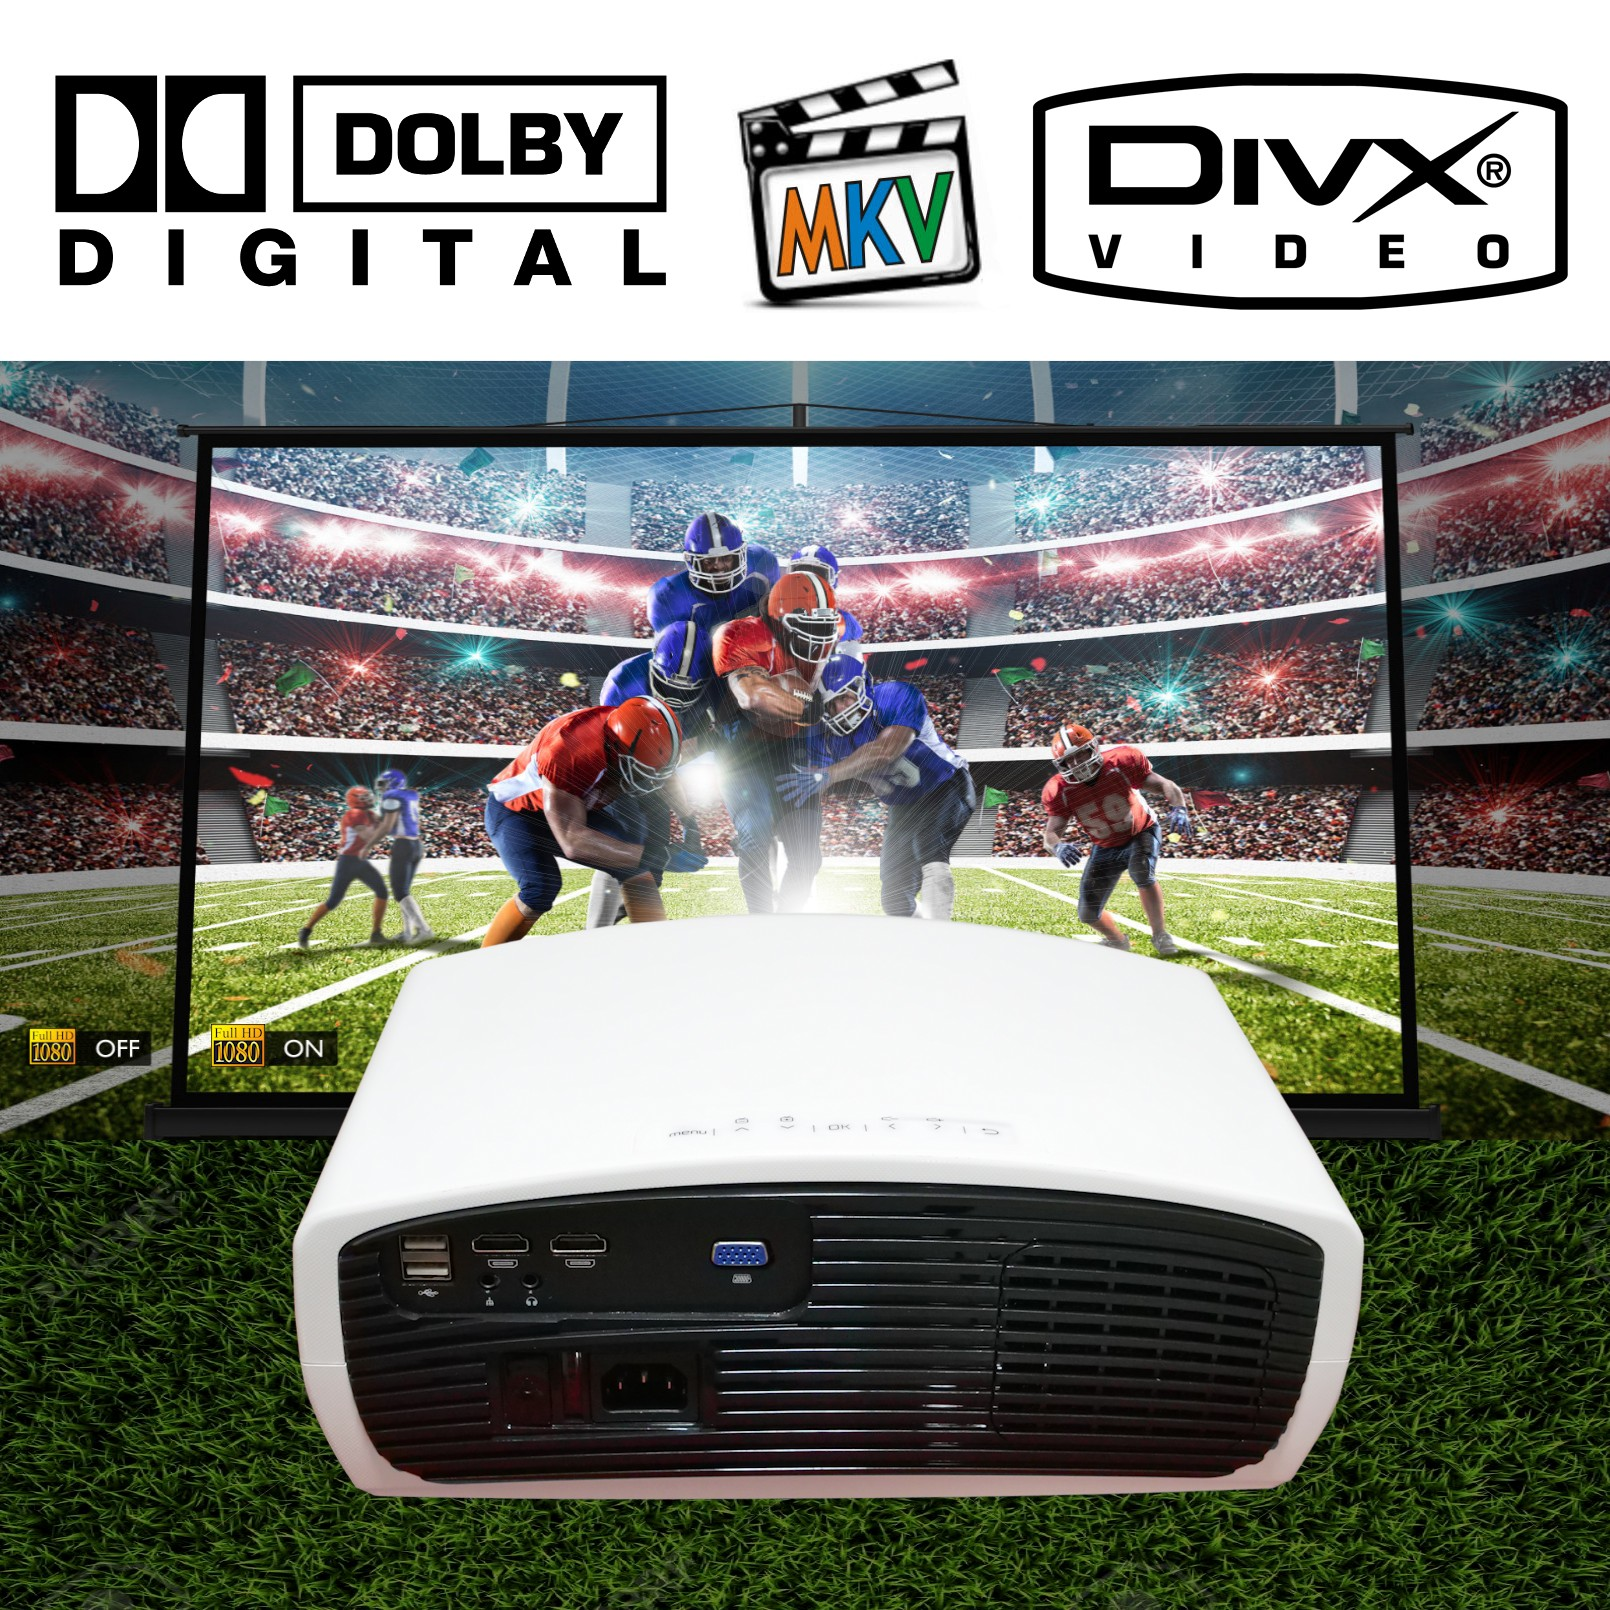 decodificador dolby digital ac3 soportado reproductor multimedia mkv avi divx 1080p 4k imagenes